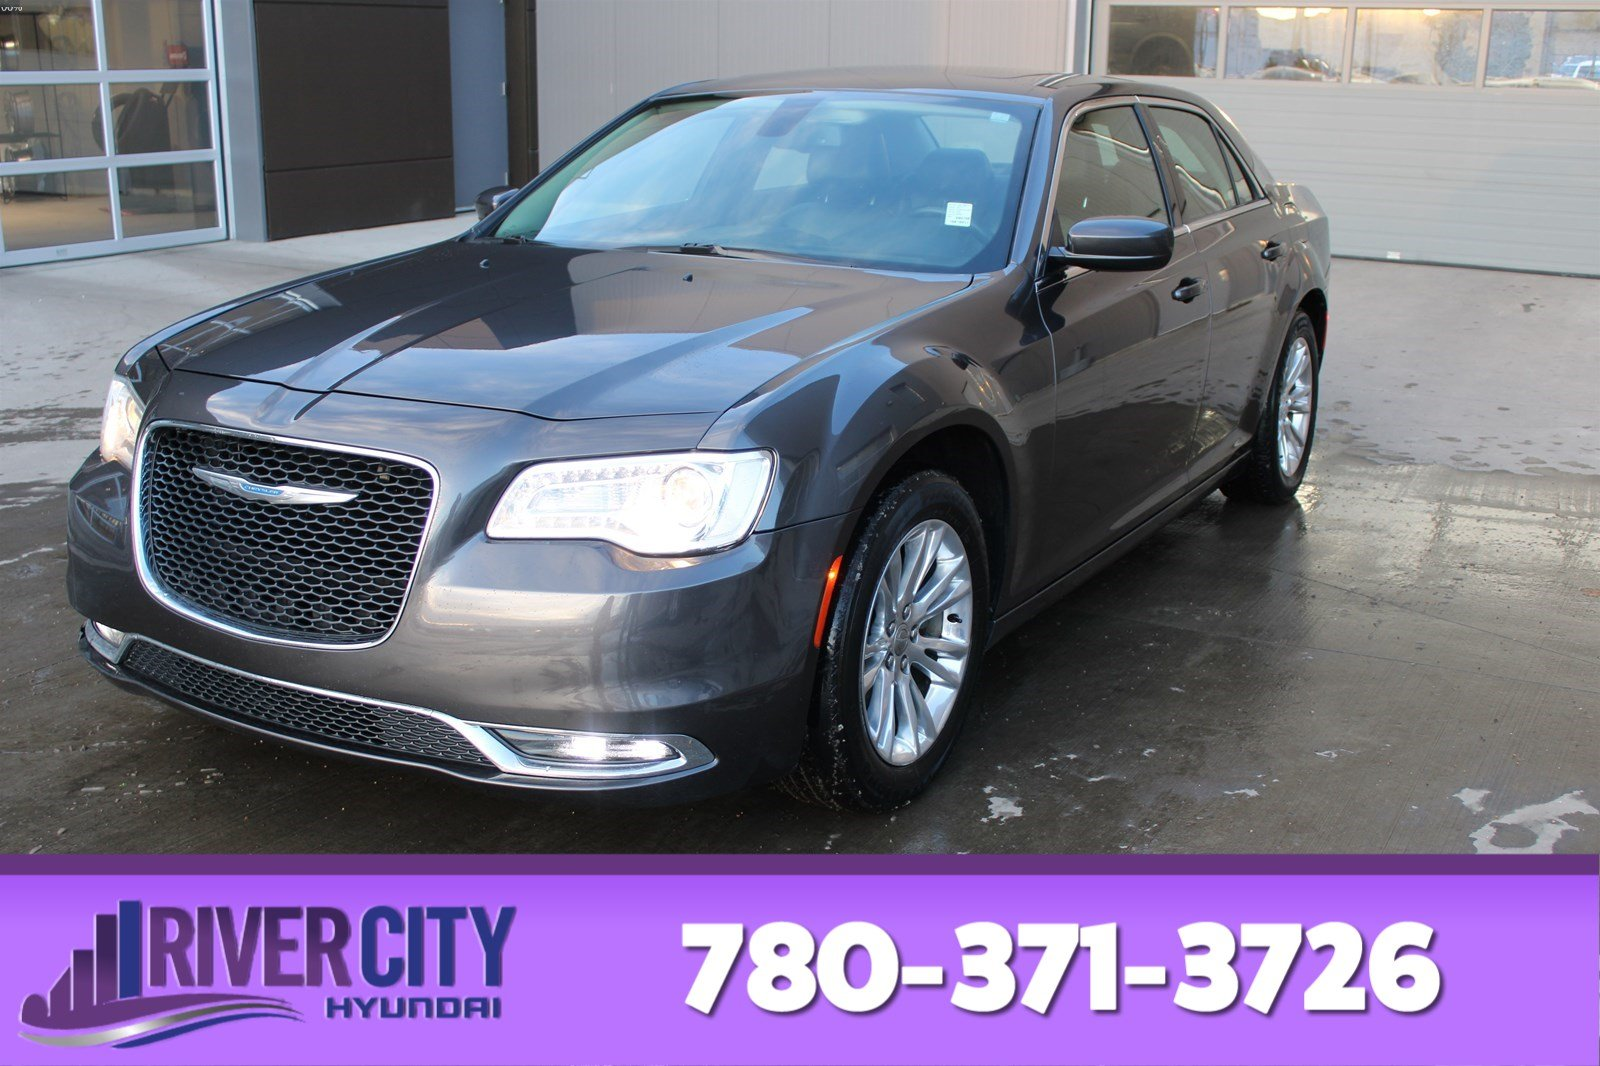 Pre-Owned 2017 Chrysler 300 TOURING Accident Free, Heated Seats, Sunroof, Panoramic Roof, Back-up Cam, A/C,